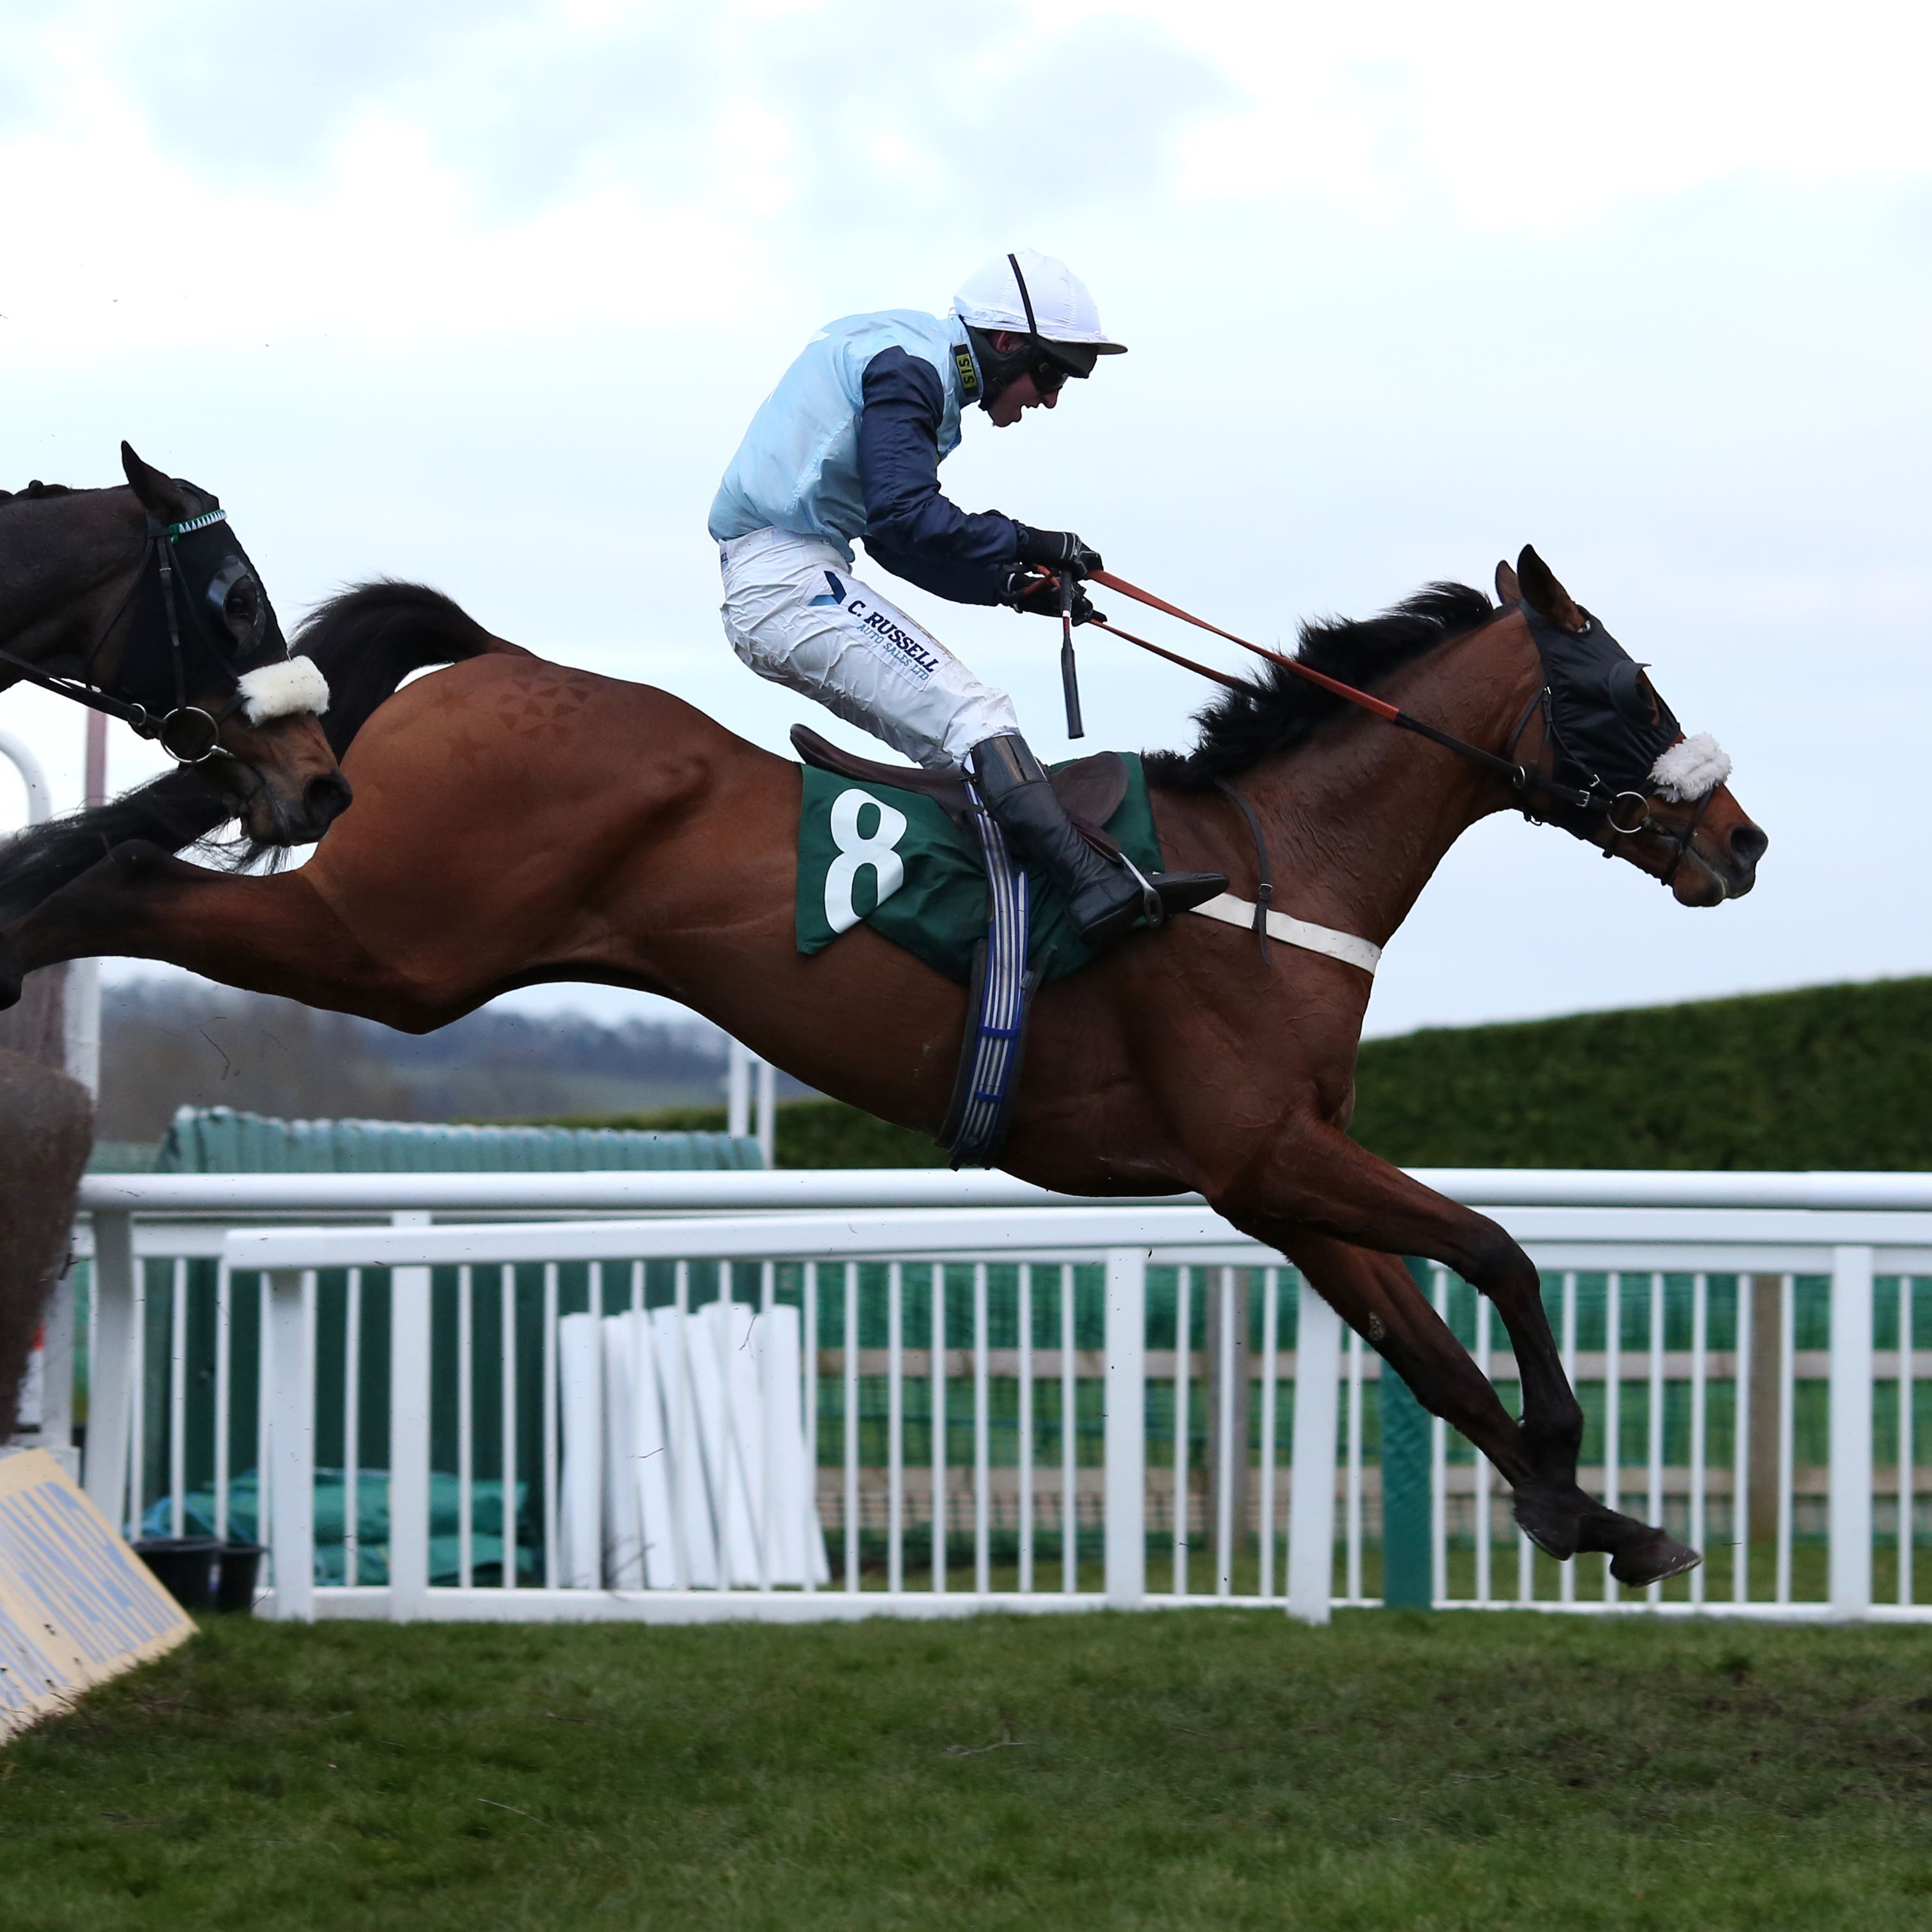 Missed Approach on his way to winning at the Cheltenham Festival